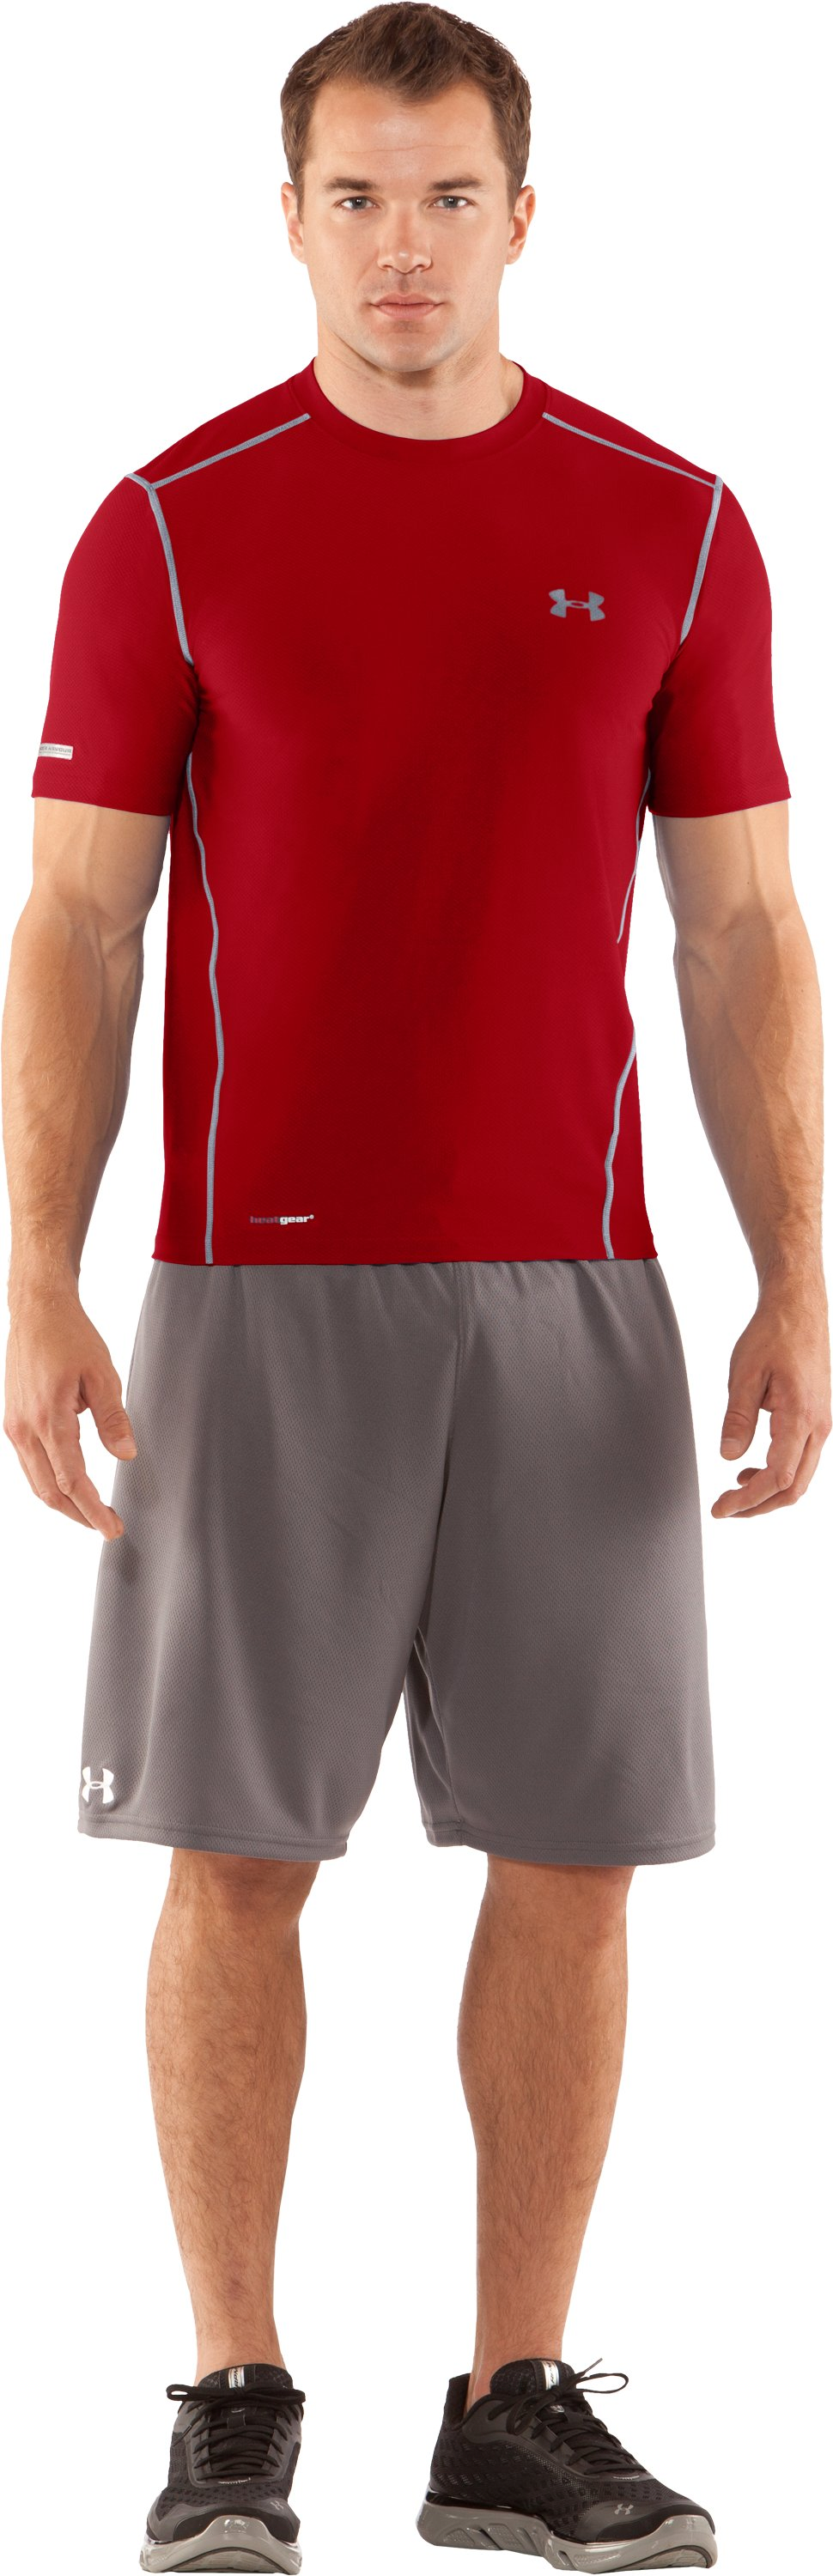 Men's HeatGear® Fitted Short Sleeve Crew, Red, zoomed image